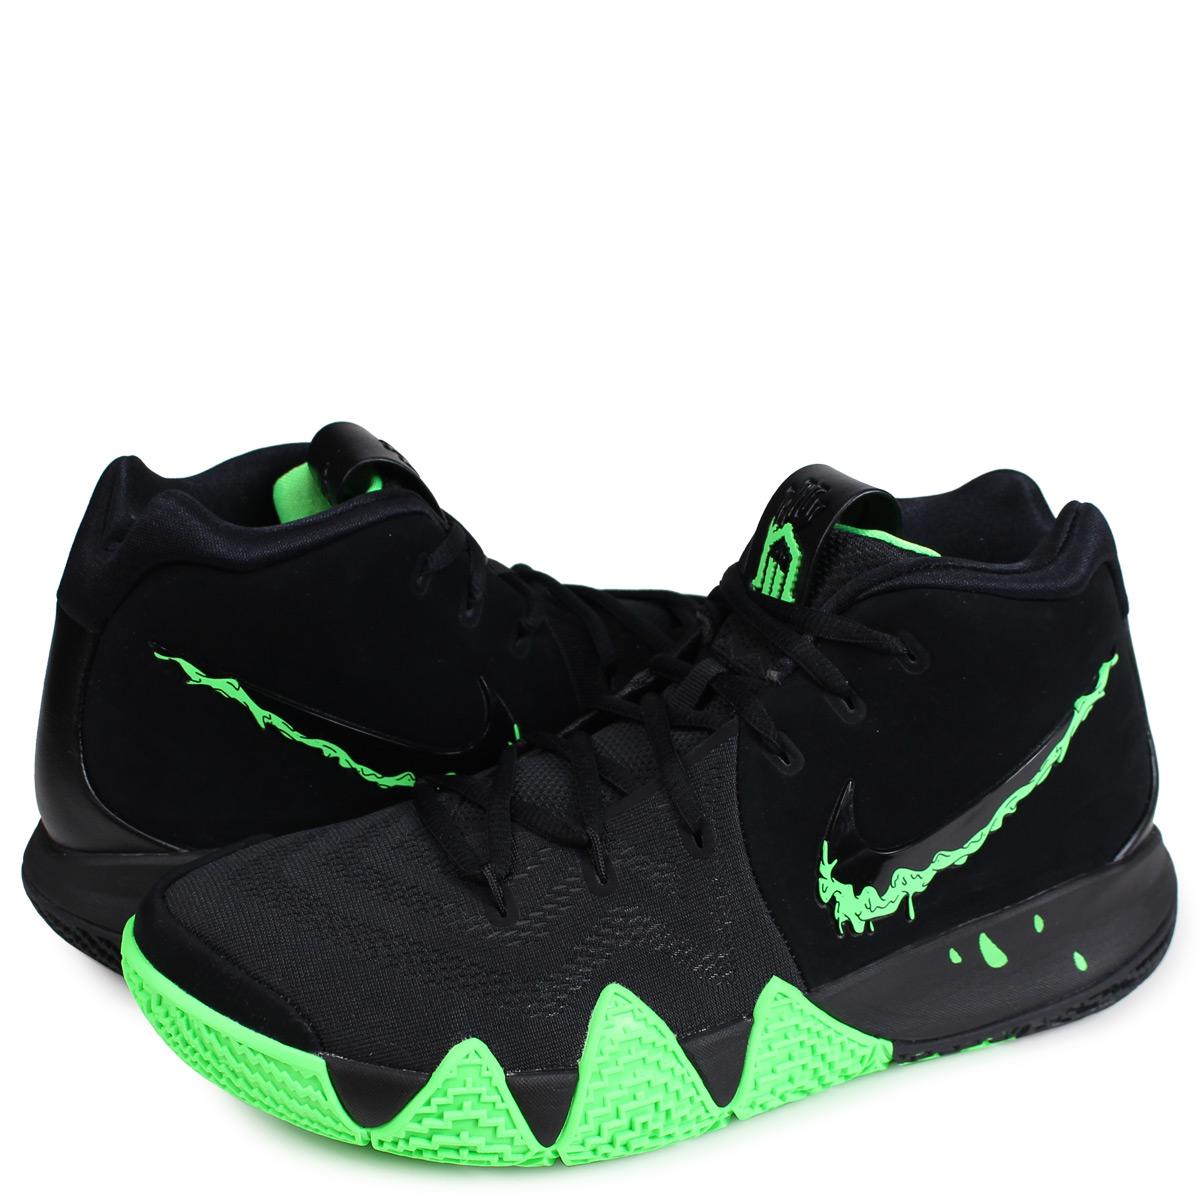 official photos b739e a83eb Nike NIKE chi Lee 4 sneakers men KYRIE 4 EP HALLOWEEN black black  943,807-012 [197]